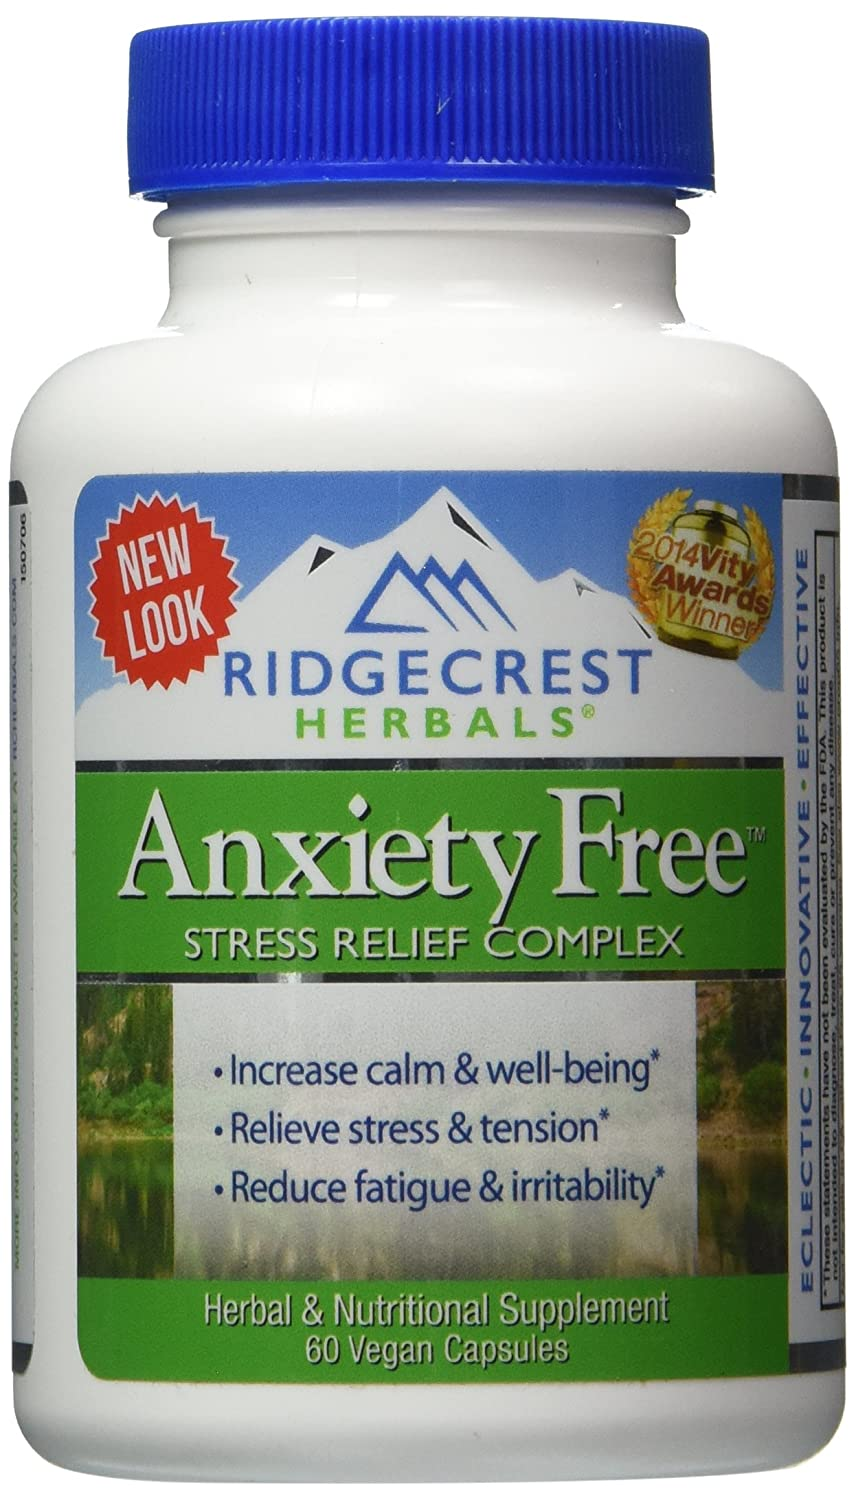 Cheap herbal supplement - Amazon Com Ridgecrest Anxiety Free Herbal And Nutrition Stress Support 60 Count Health Personal Care